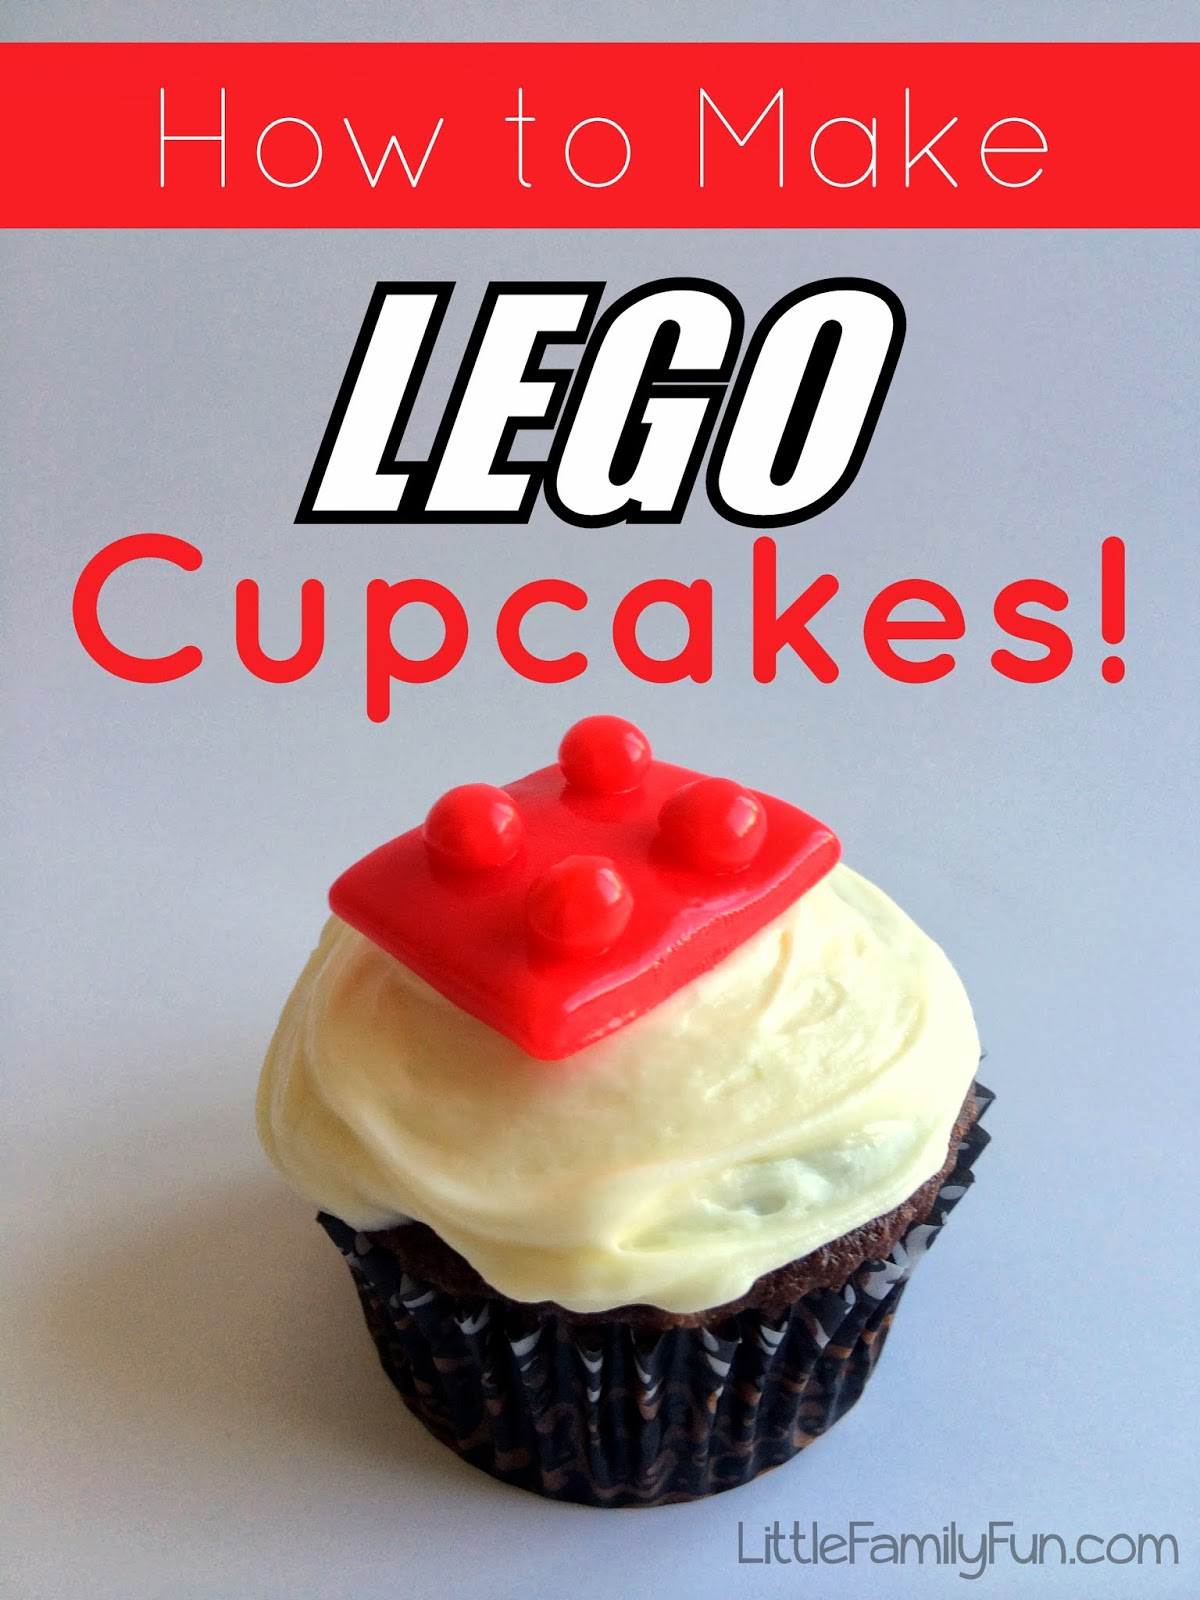 http://www.littlefamilyfun.com/2014/03/how-to-make-lego-cupcakes.html